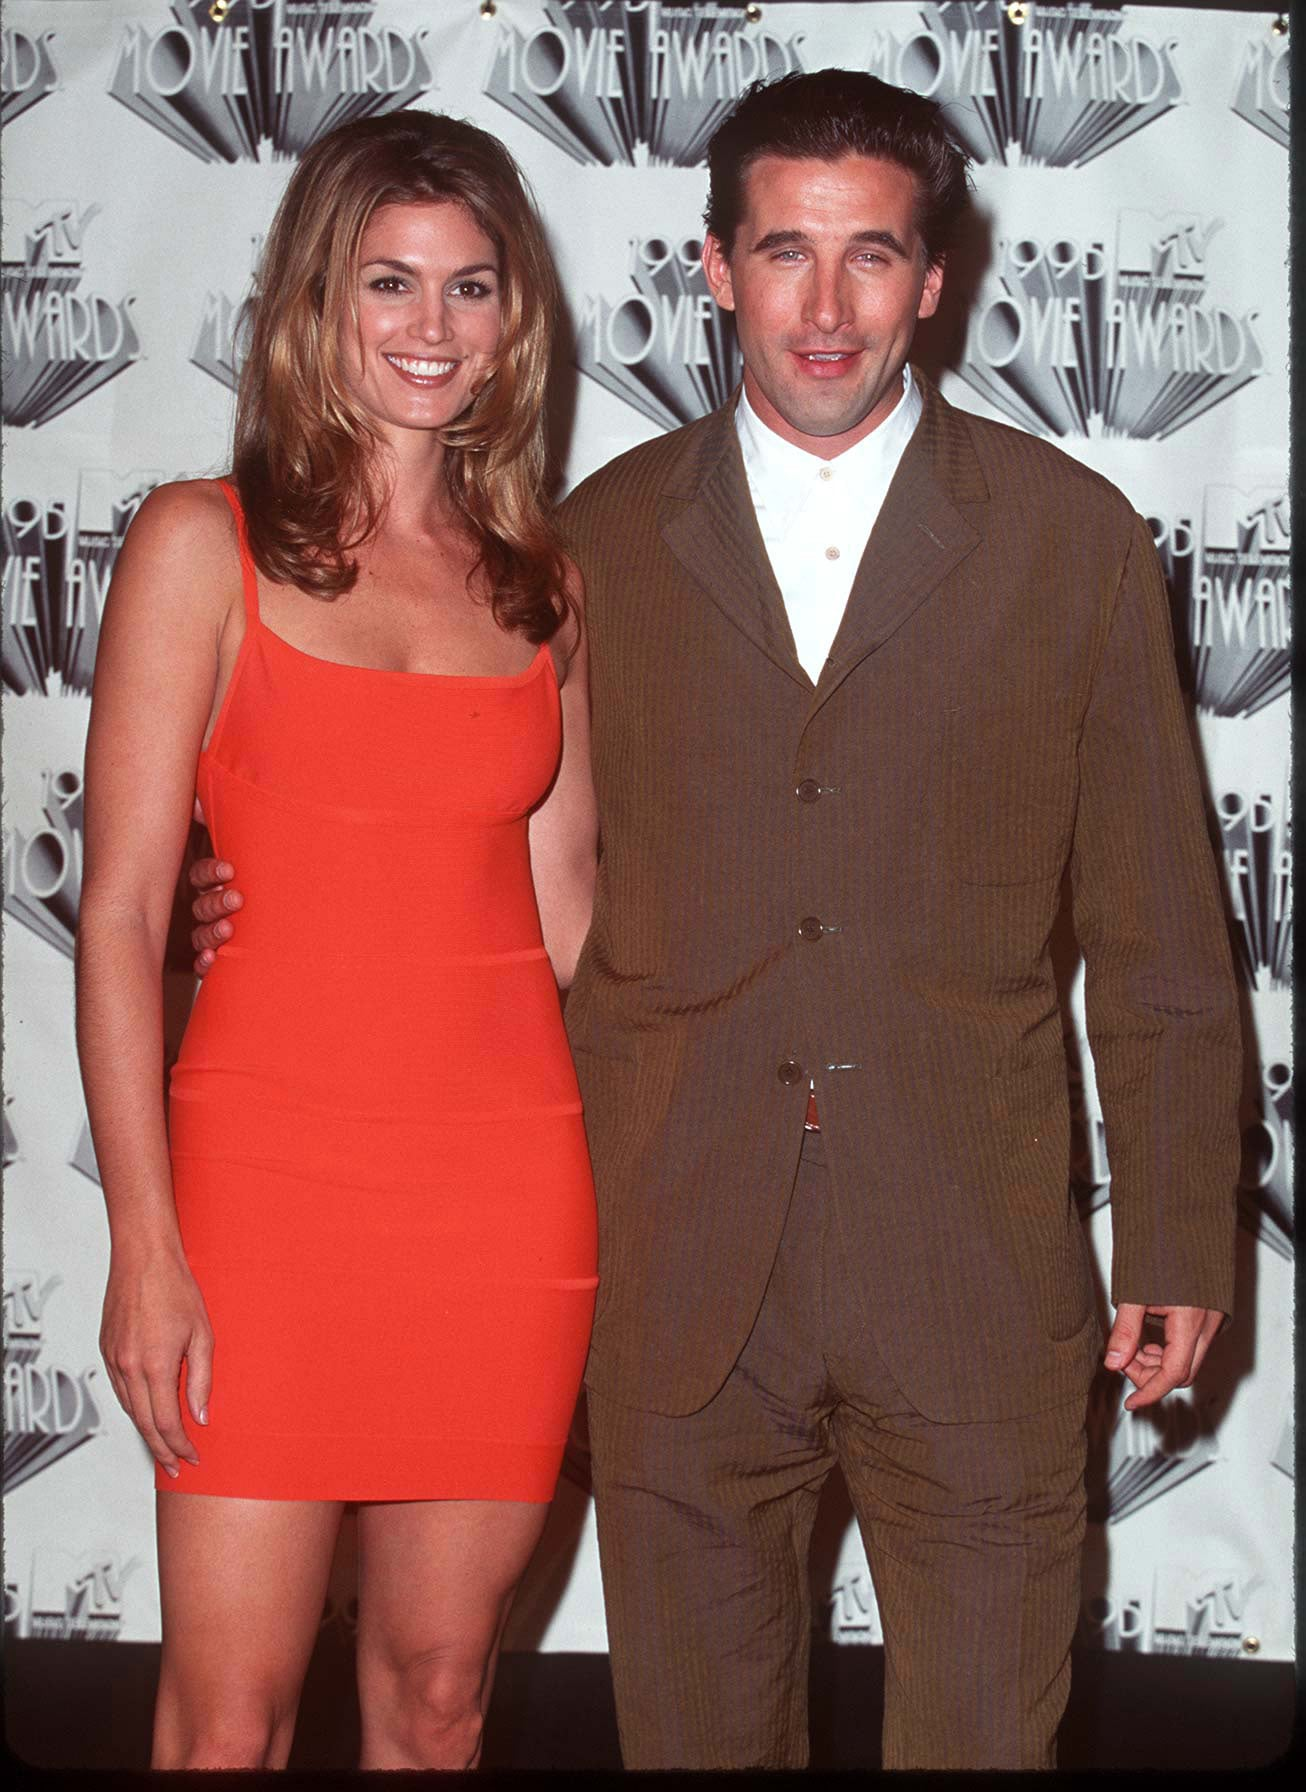 Cindy Crawford snapped pictures with Billy Baldwin.